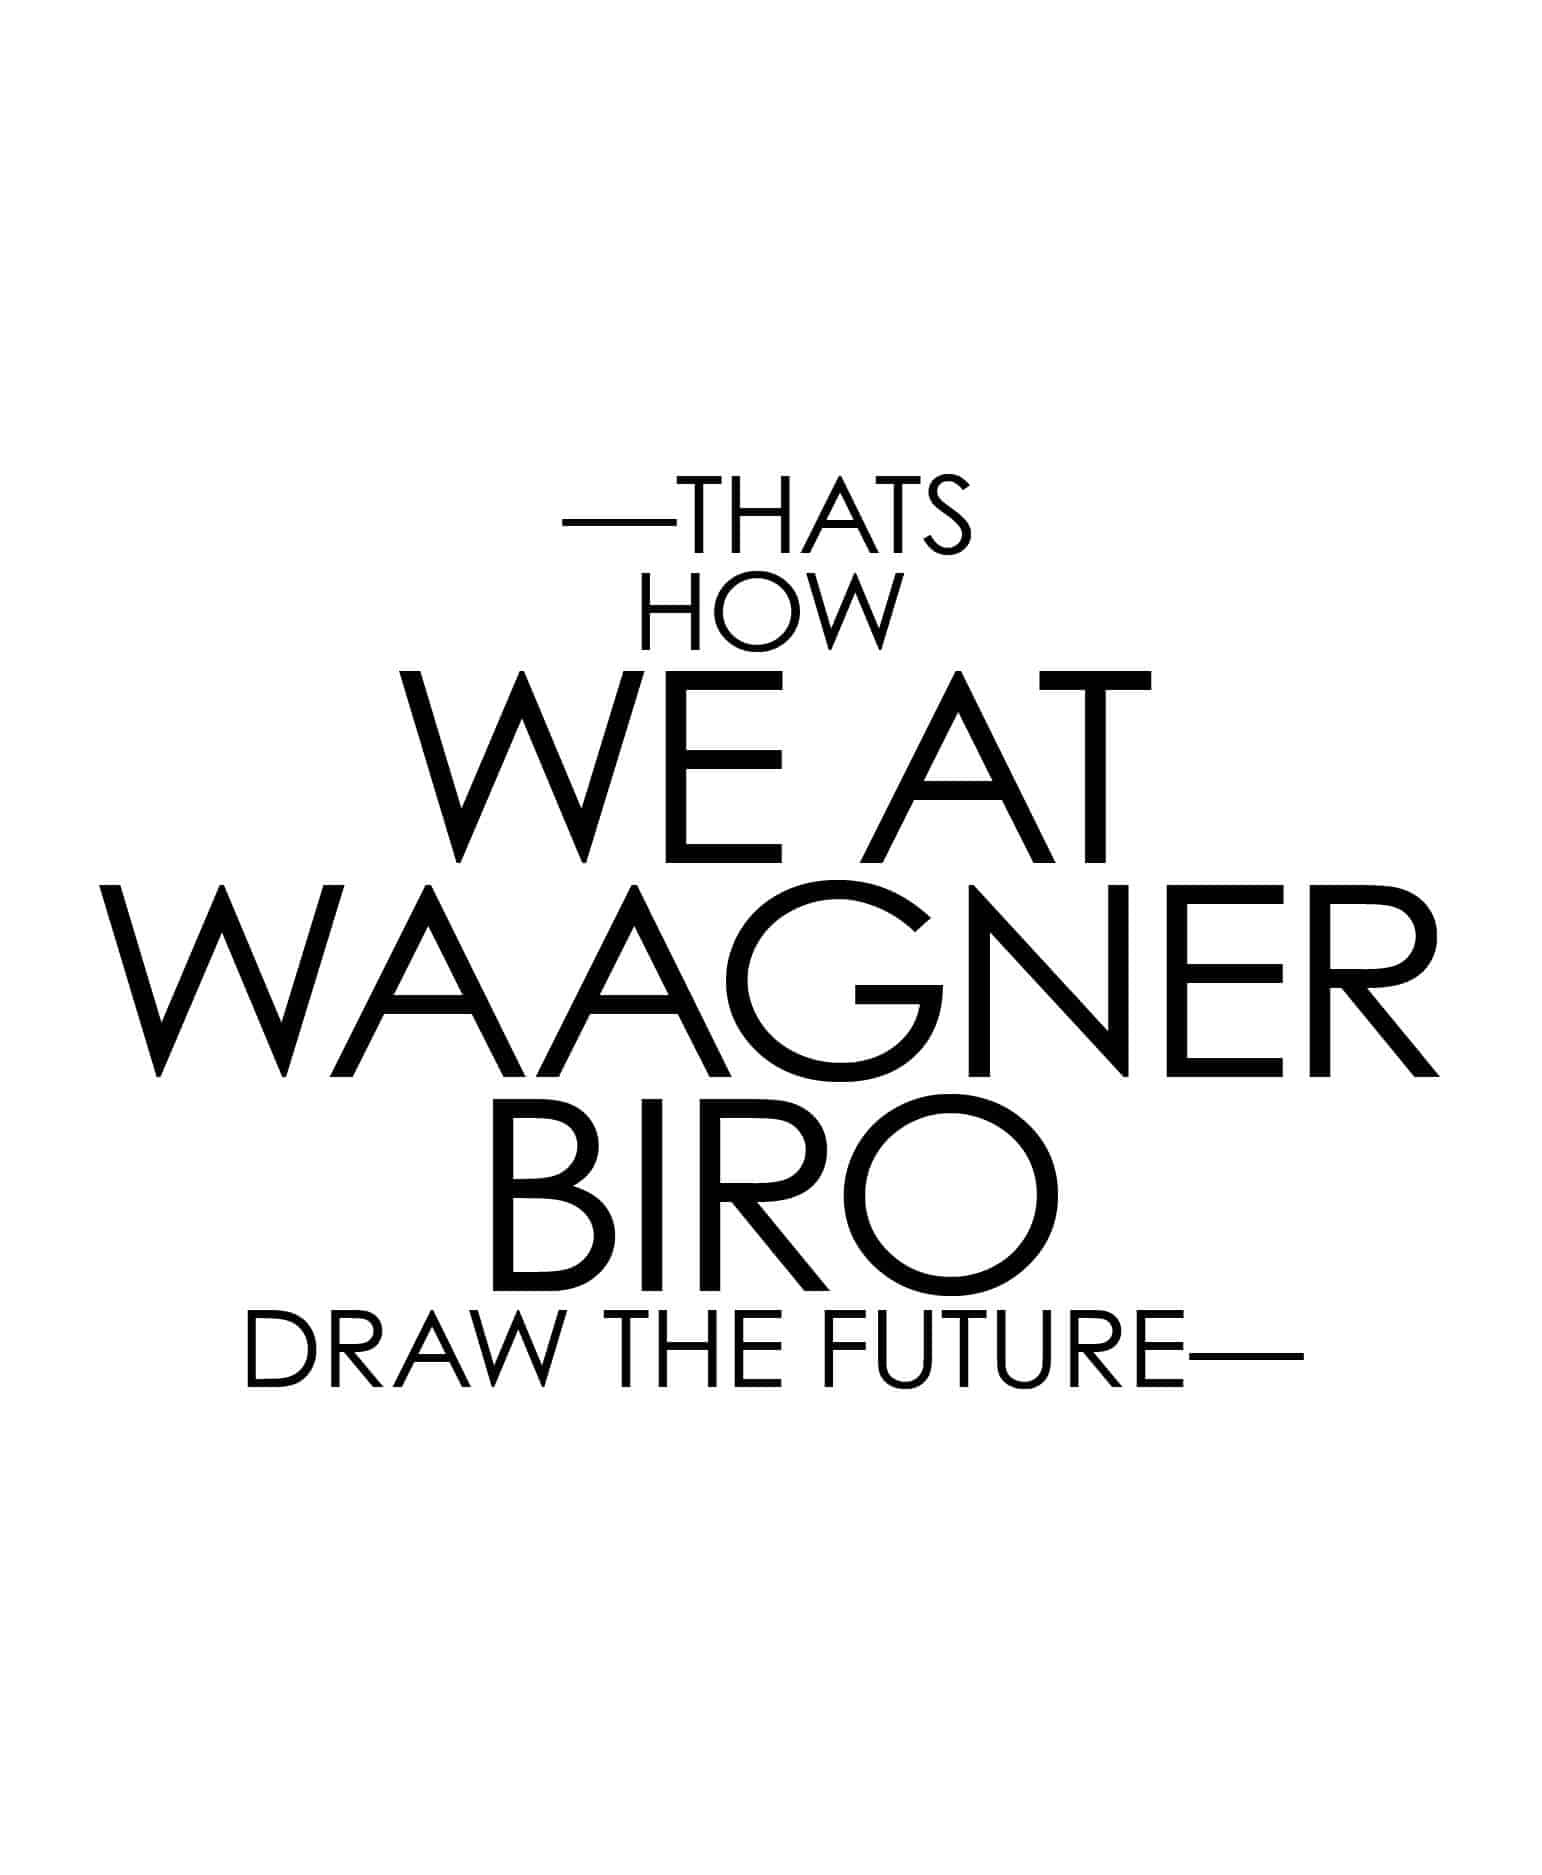 Waagner Biro - Animation